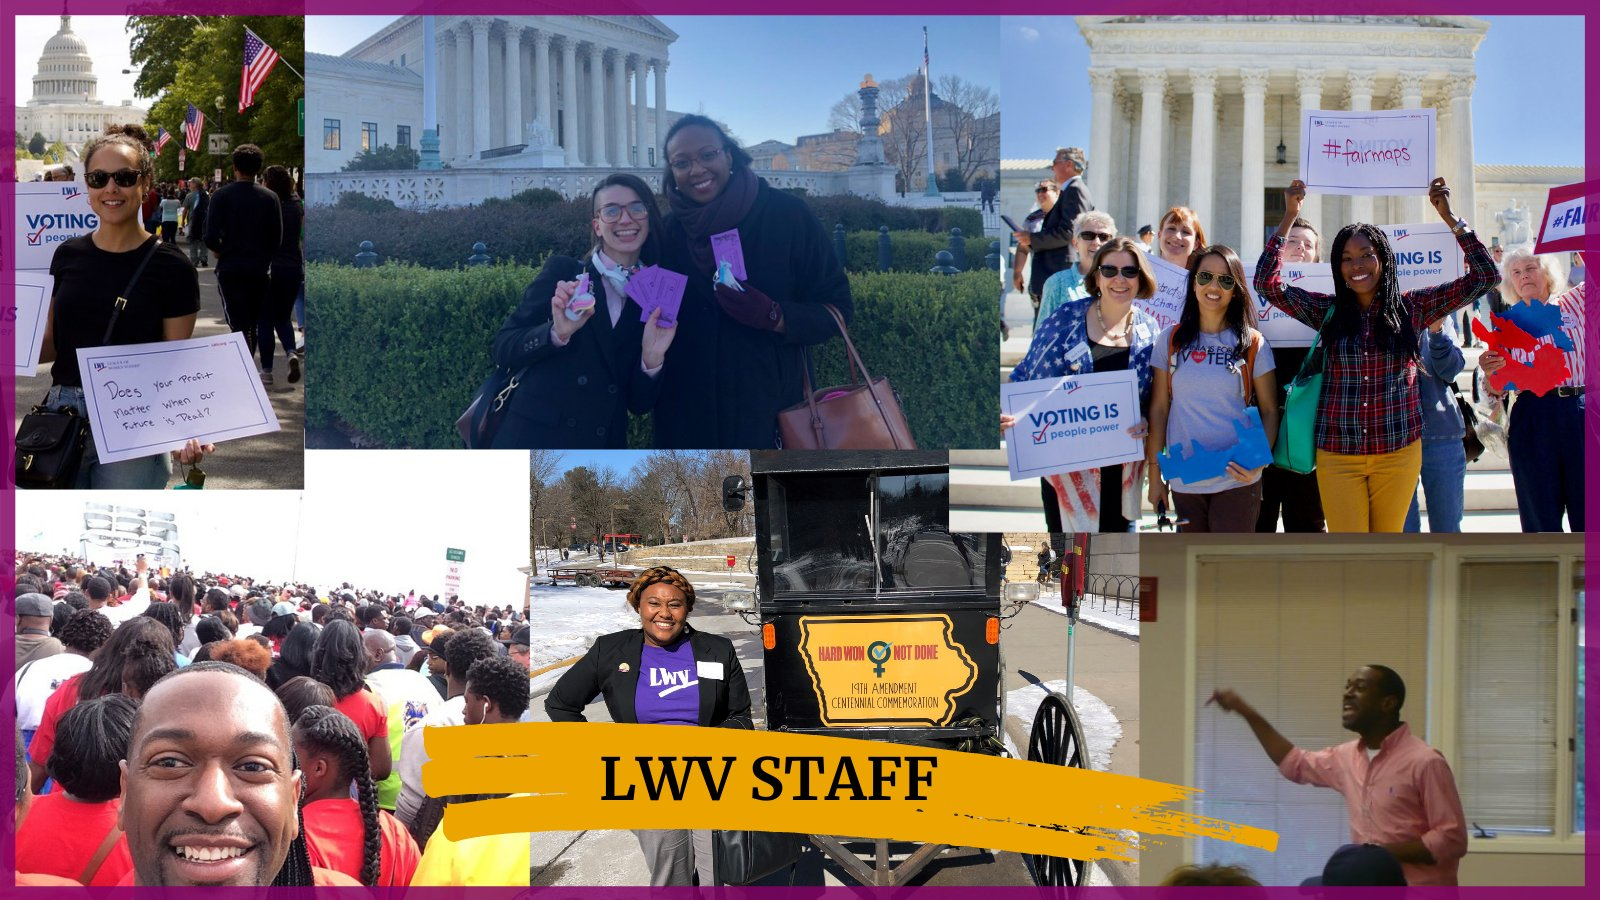 Pictures of Black LWVUS staff at rallies and events